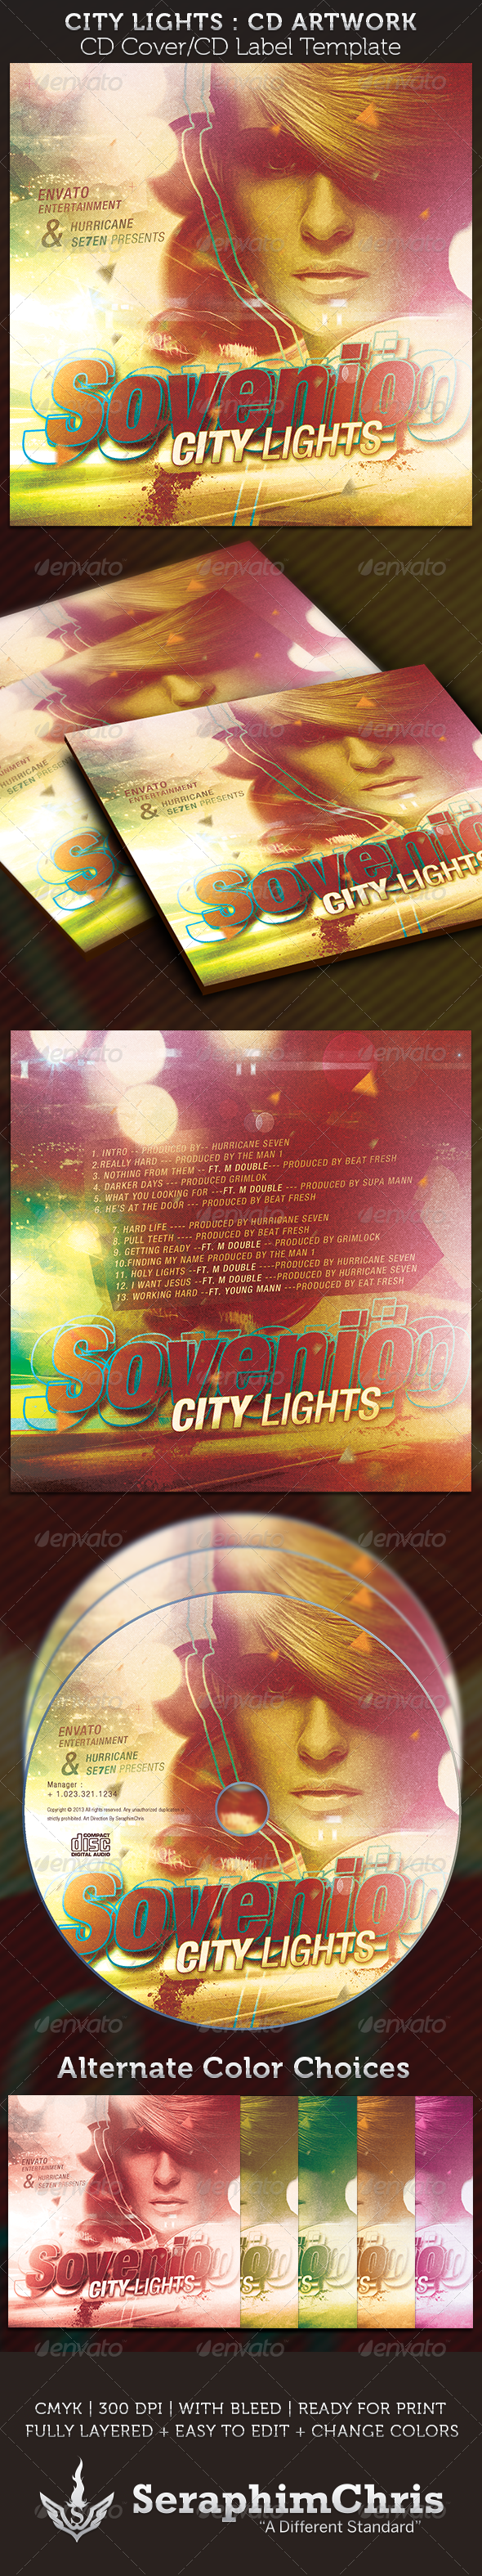 City Lights CD Cover Artwork Template - CD & DVD artwork Print Templates